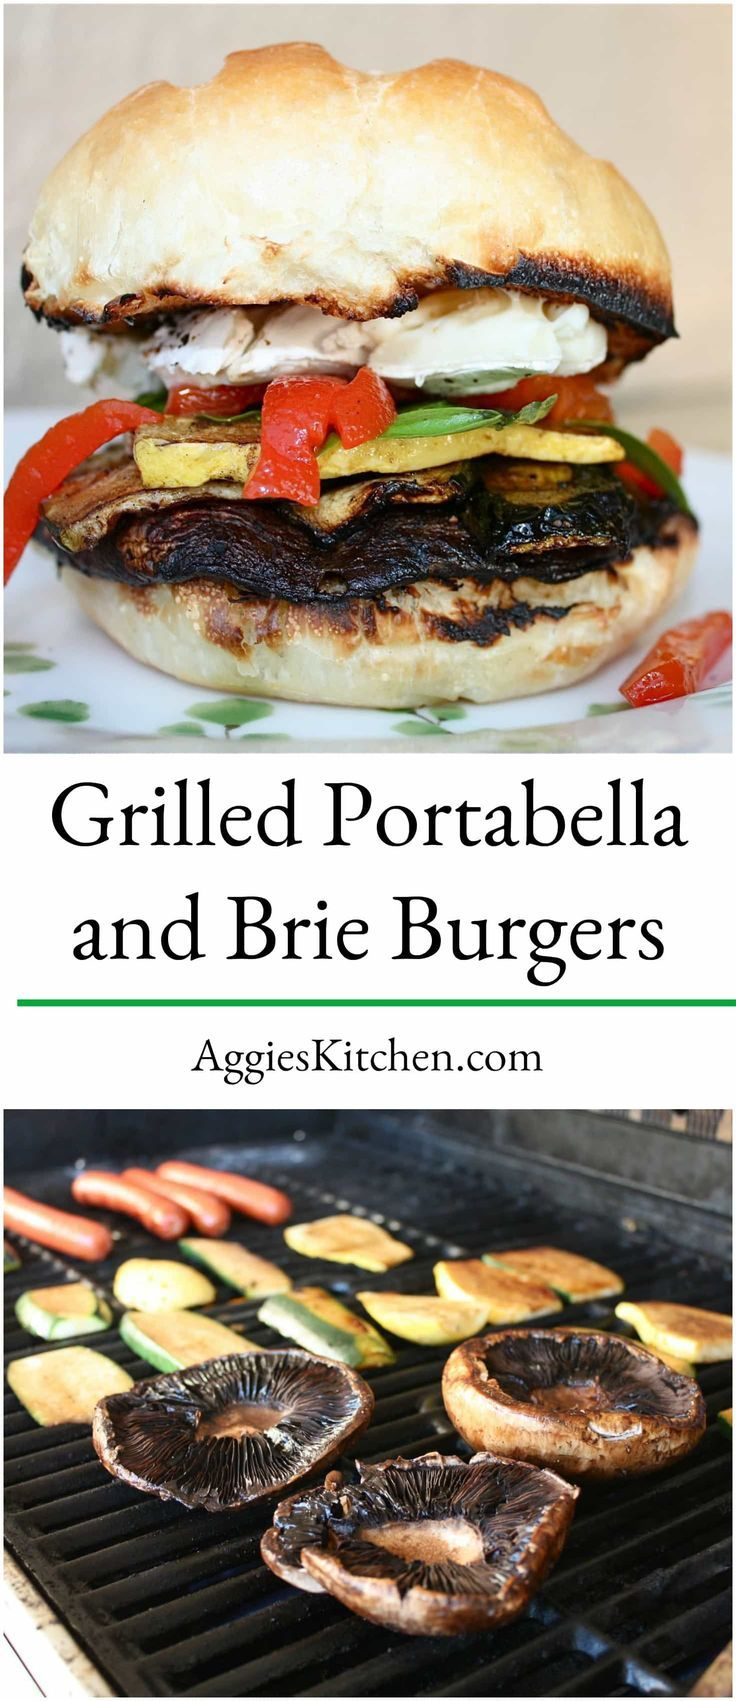 Enjoy Grilled Portabella and Brie Burgers for a vegetarian burger option! Vegetables are marinated in balsamic vinegar then grilled to perfection! via @aggieskitchen